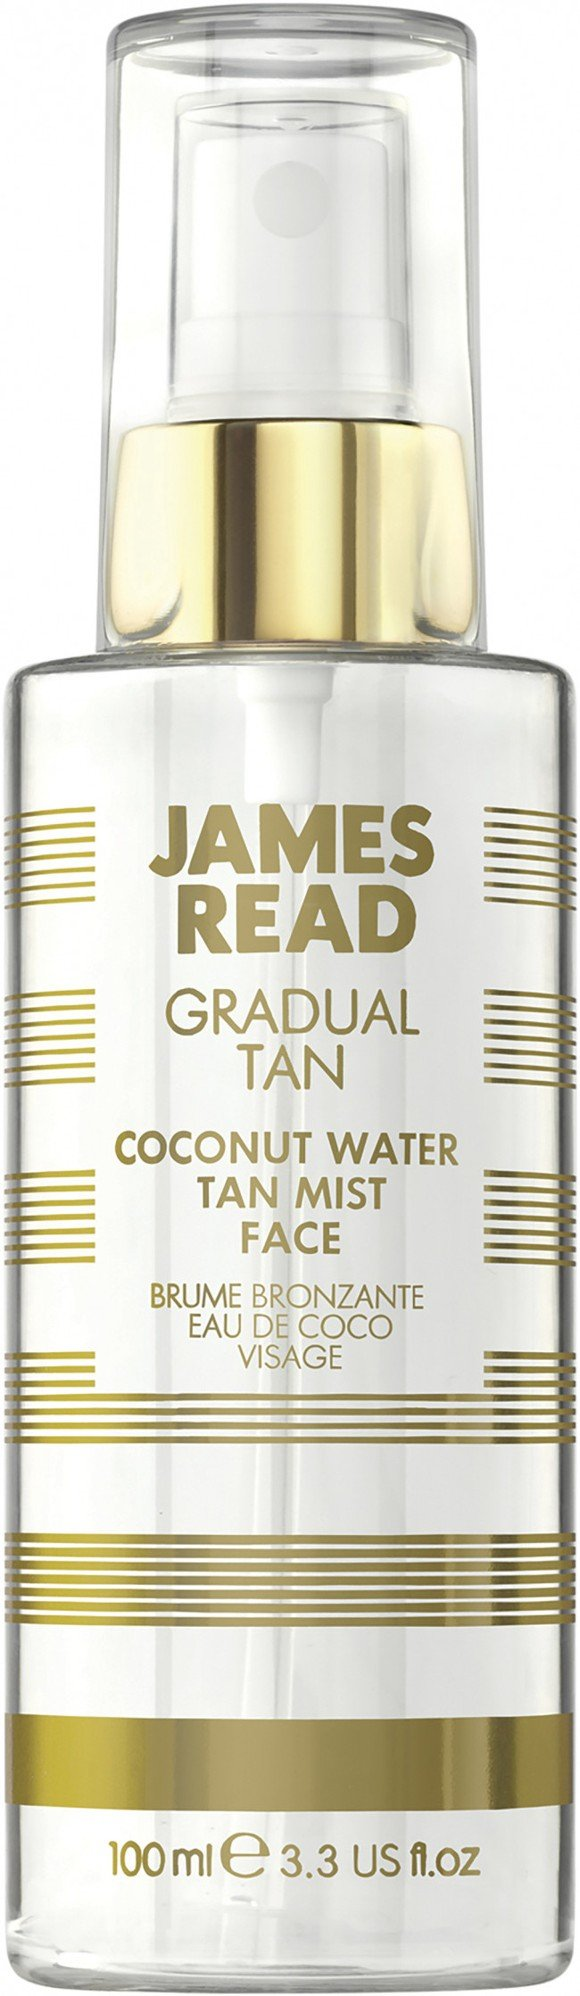 James Read - Coconut Water Tan Mist Ansigt 100 ml